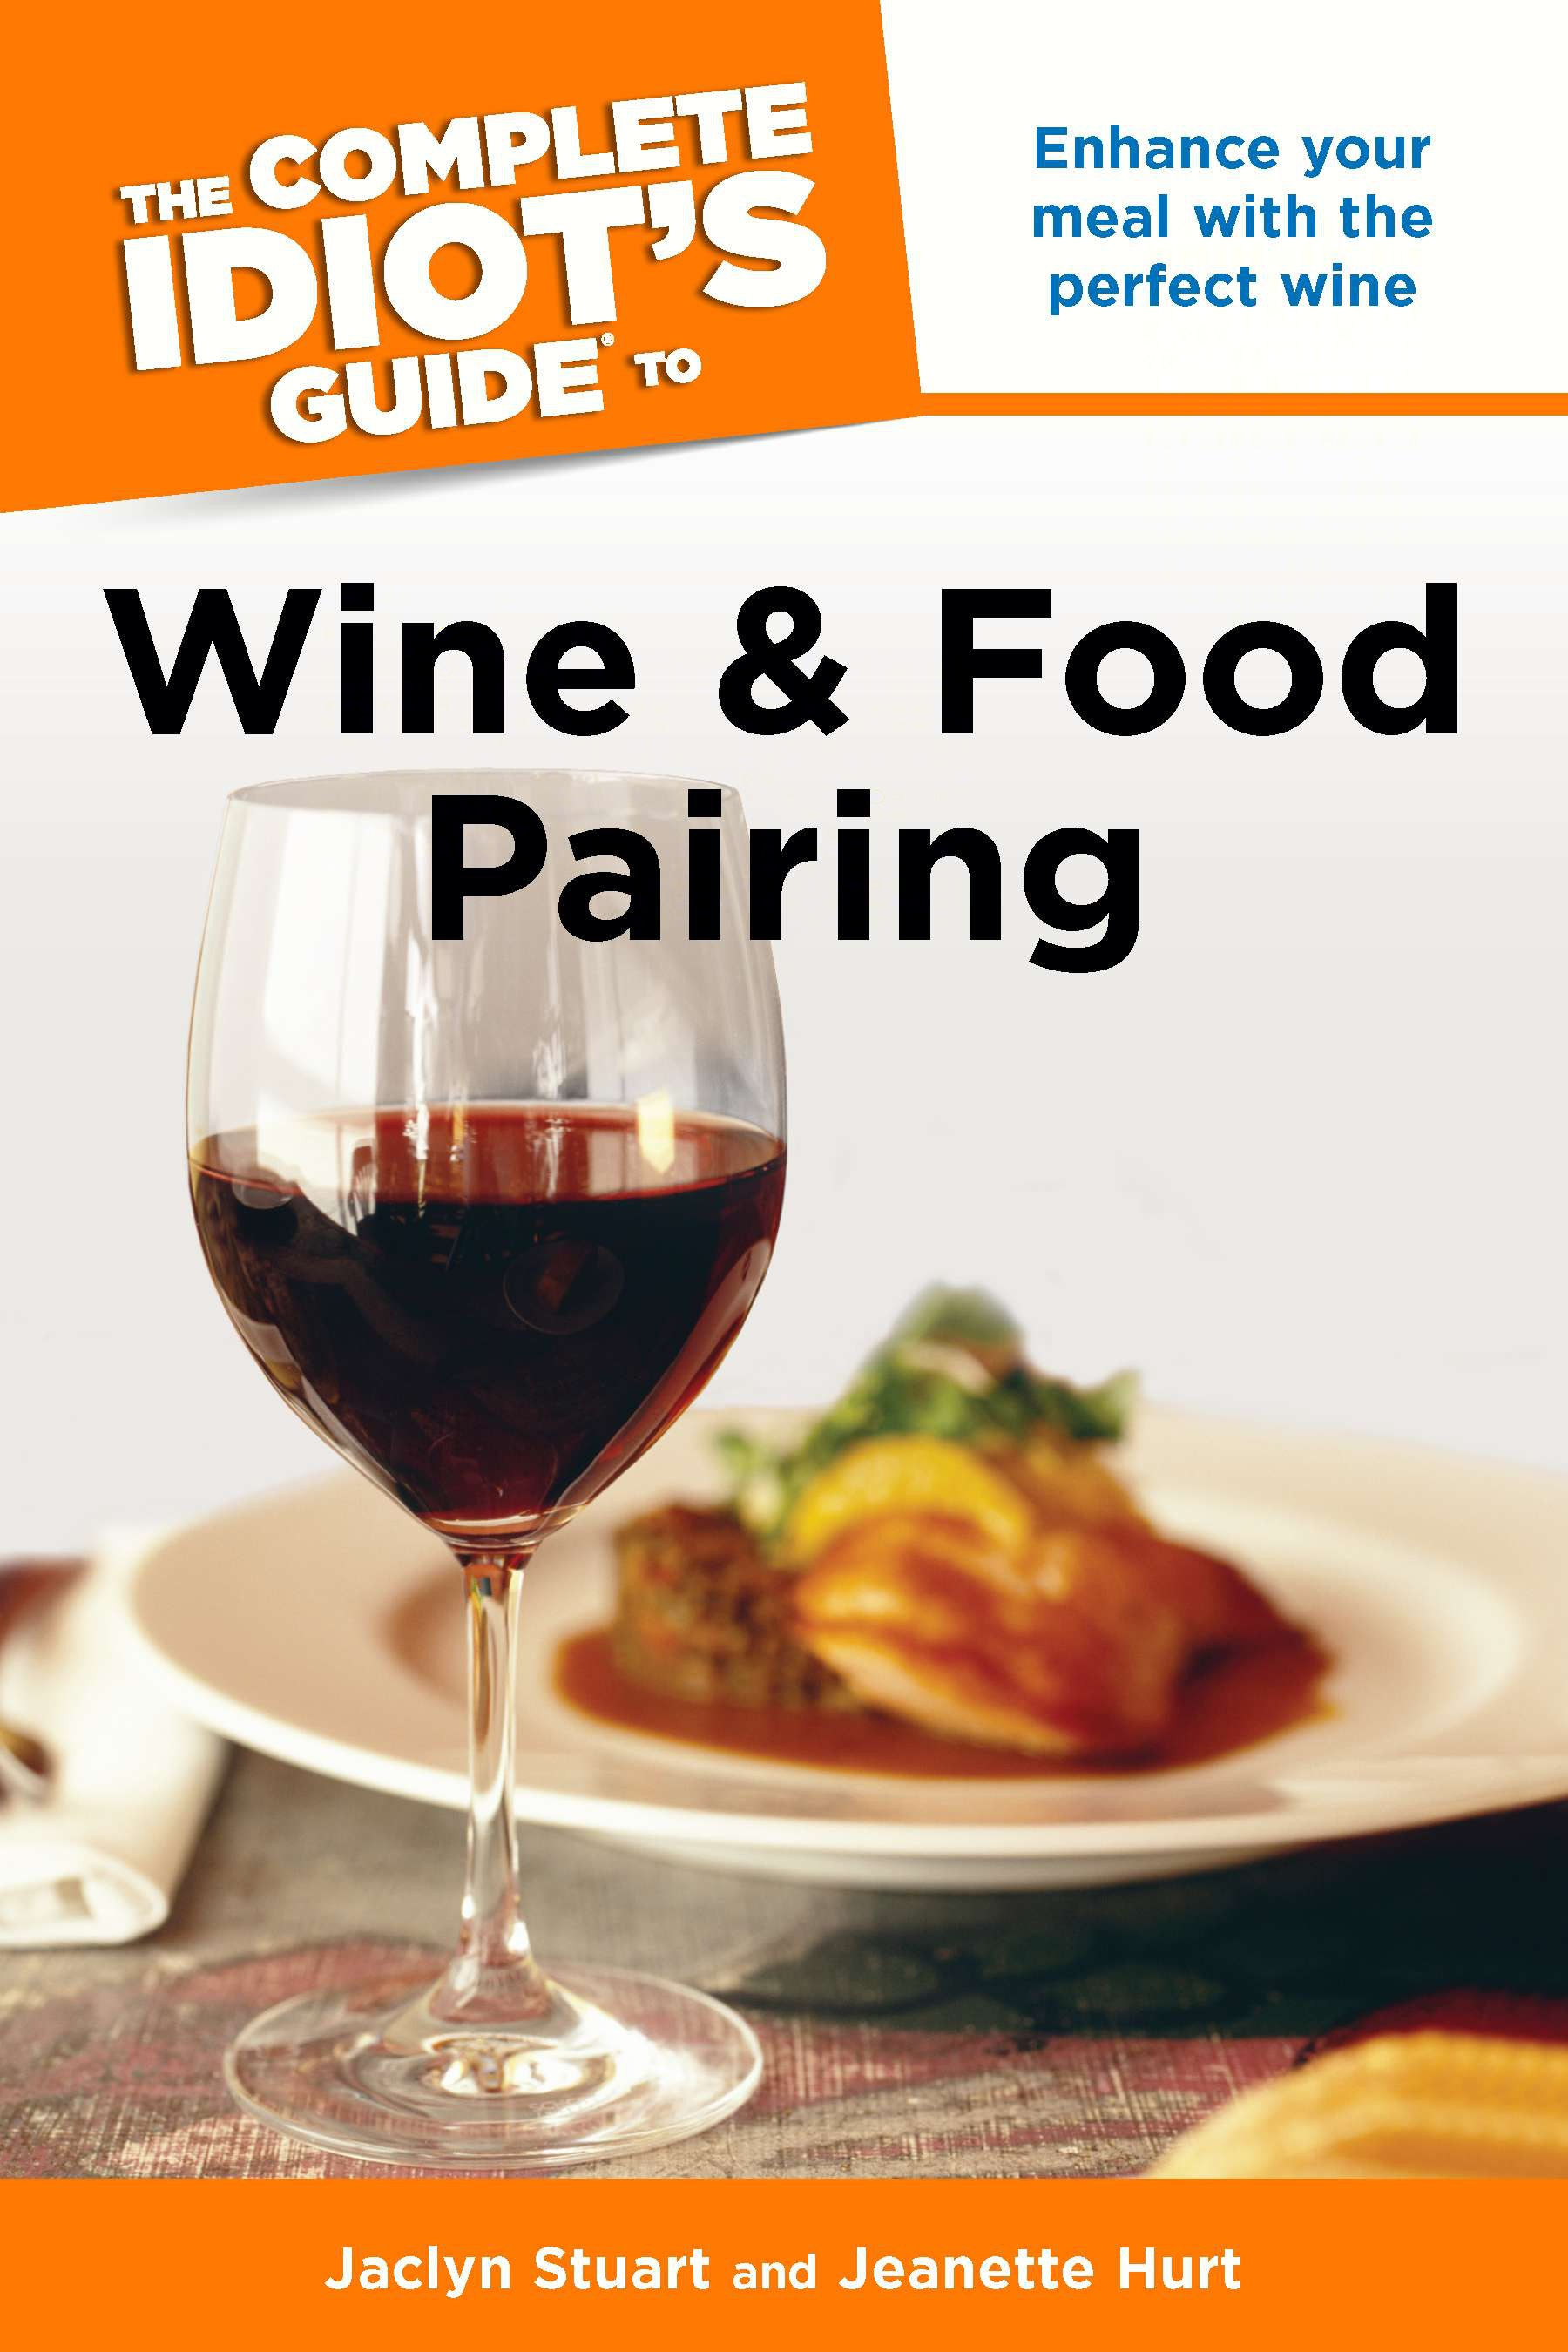 The Complete Idiot's Guide to Wine & Food Pairing